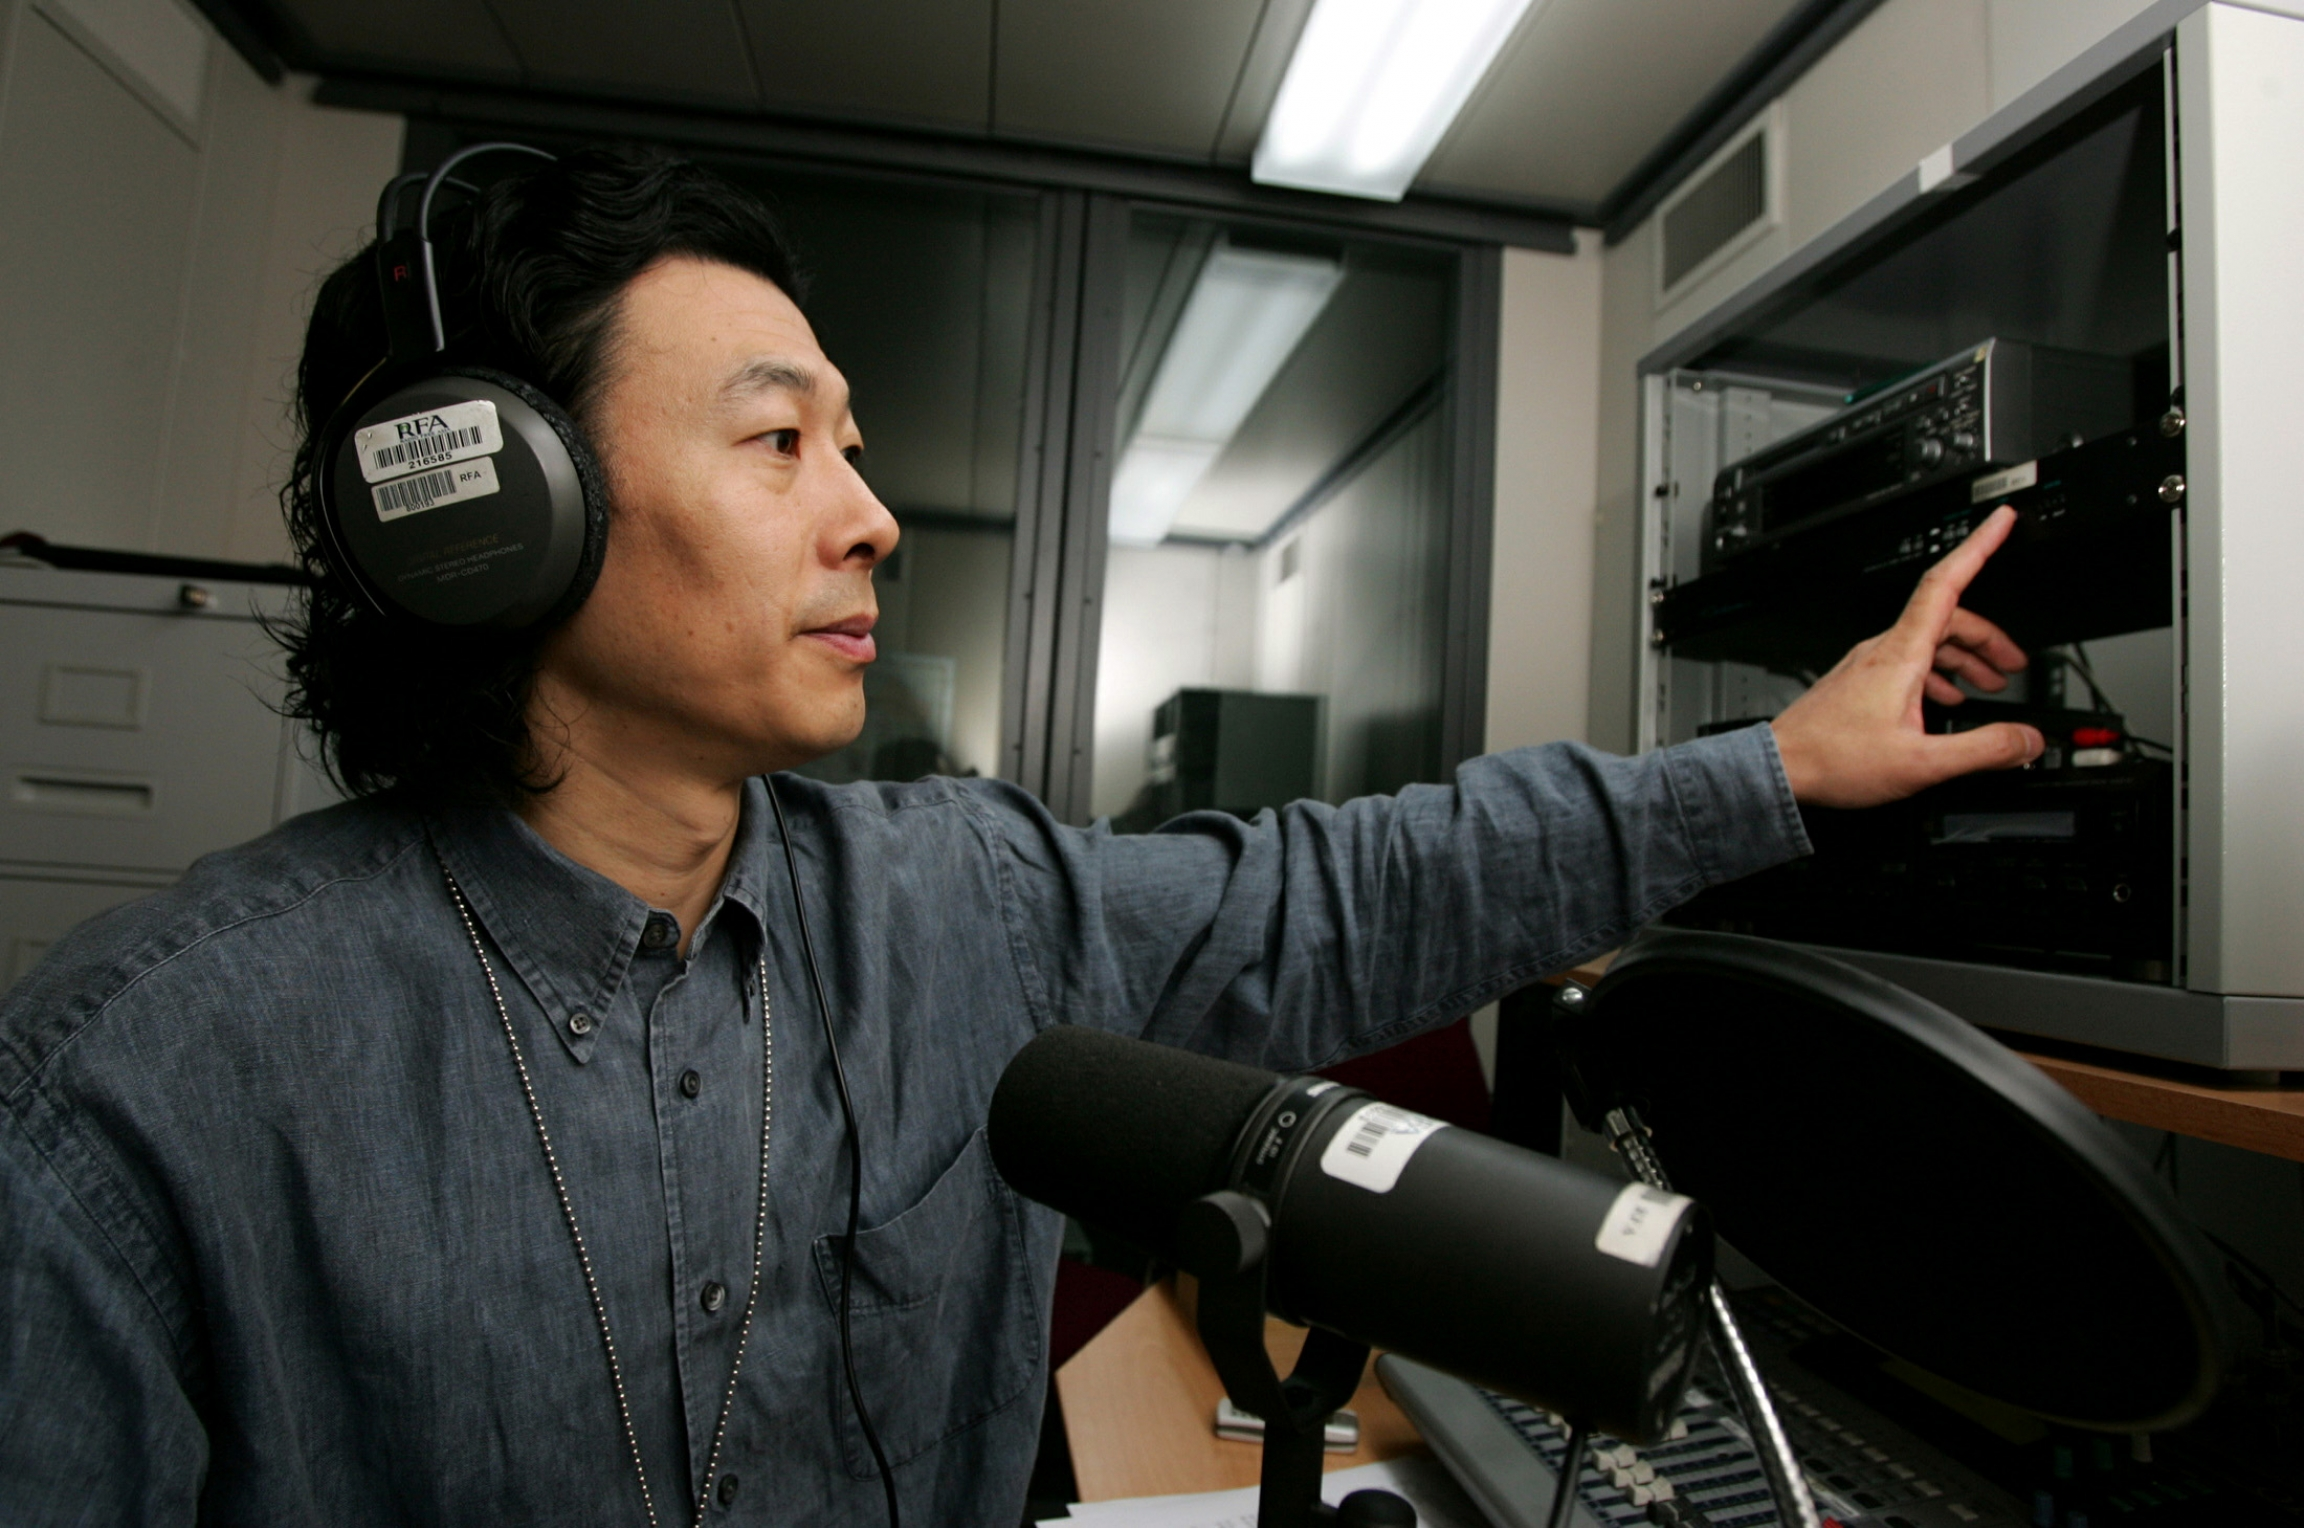 A man with headphones on speaks into a microphone in a studio.